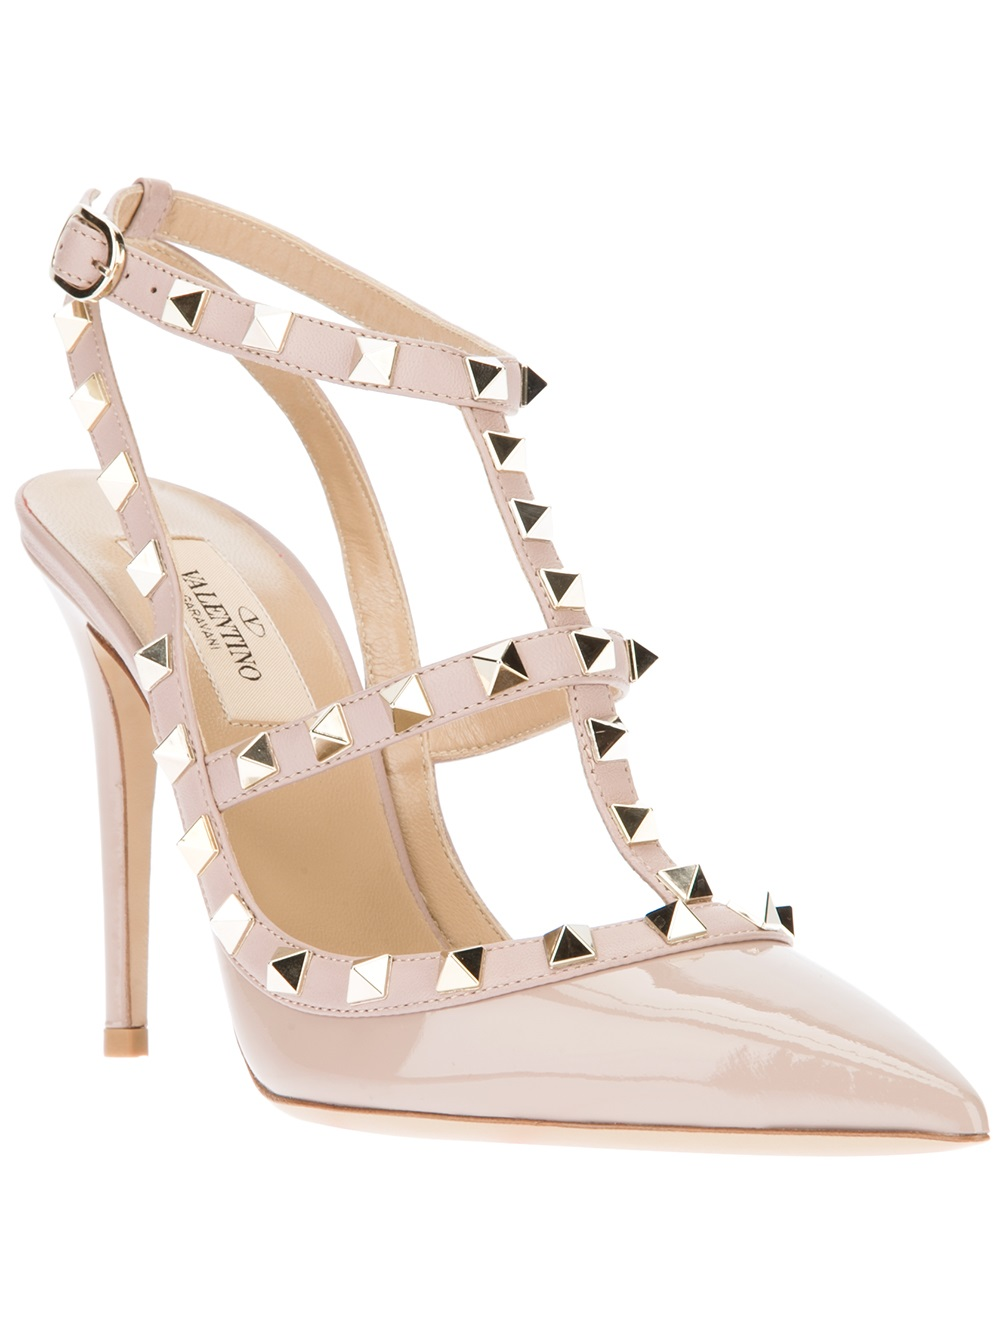 valentino rockstud pump in beige nude lyst. Black Bedroom Furniture Sets. Home Design Ideas